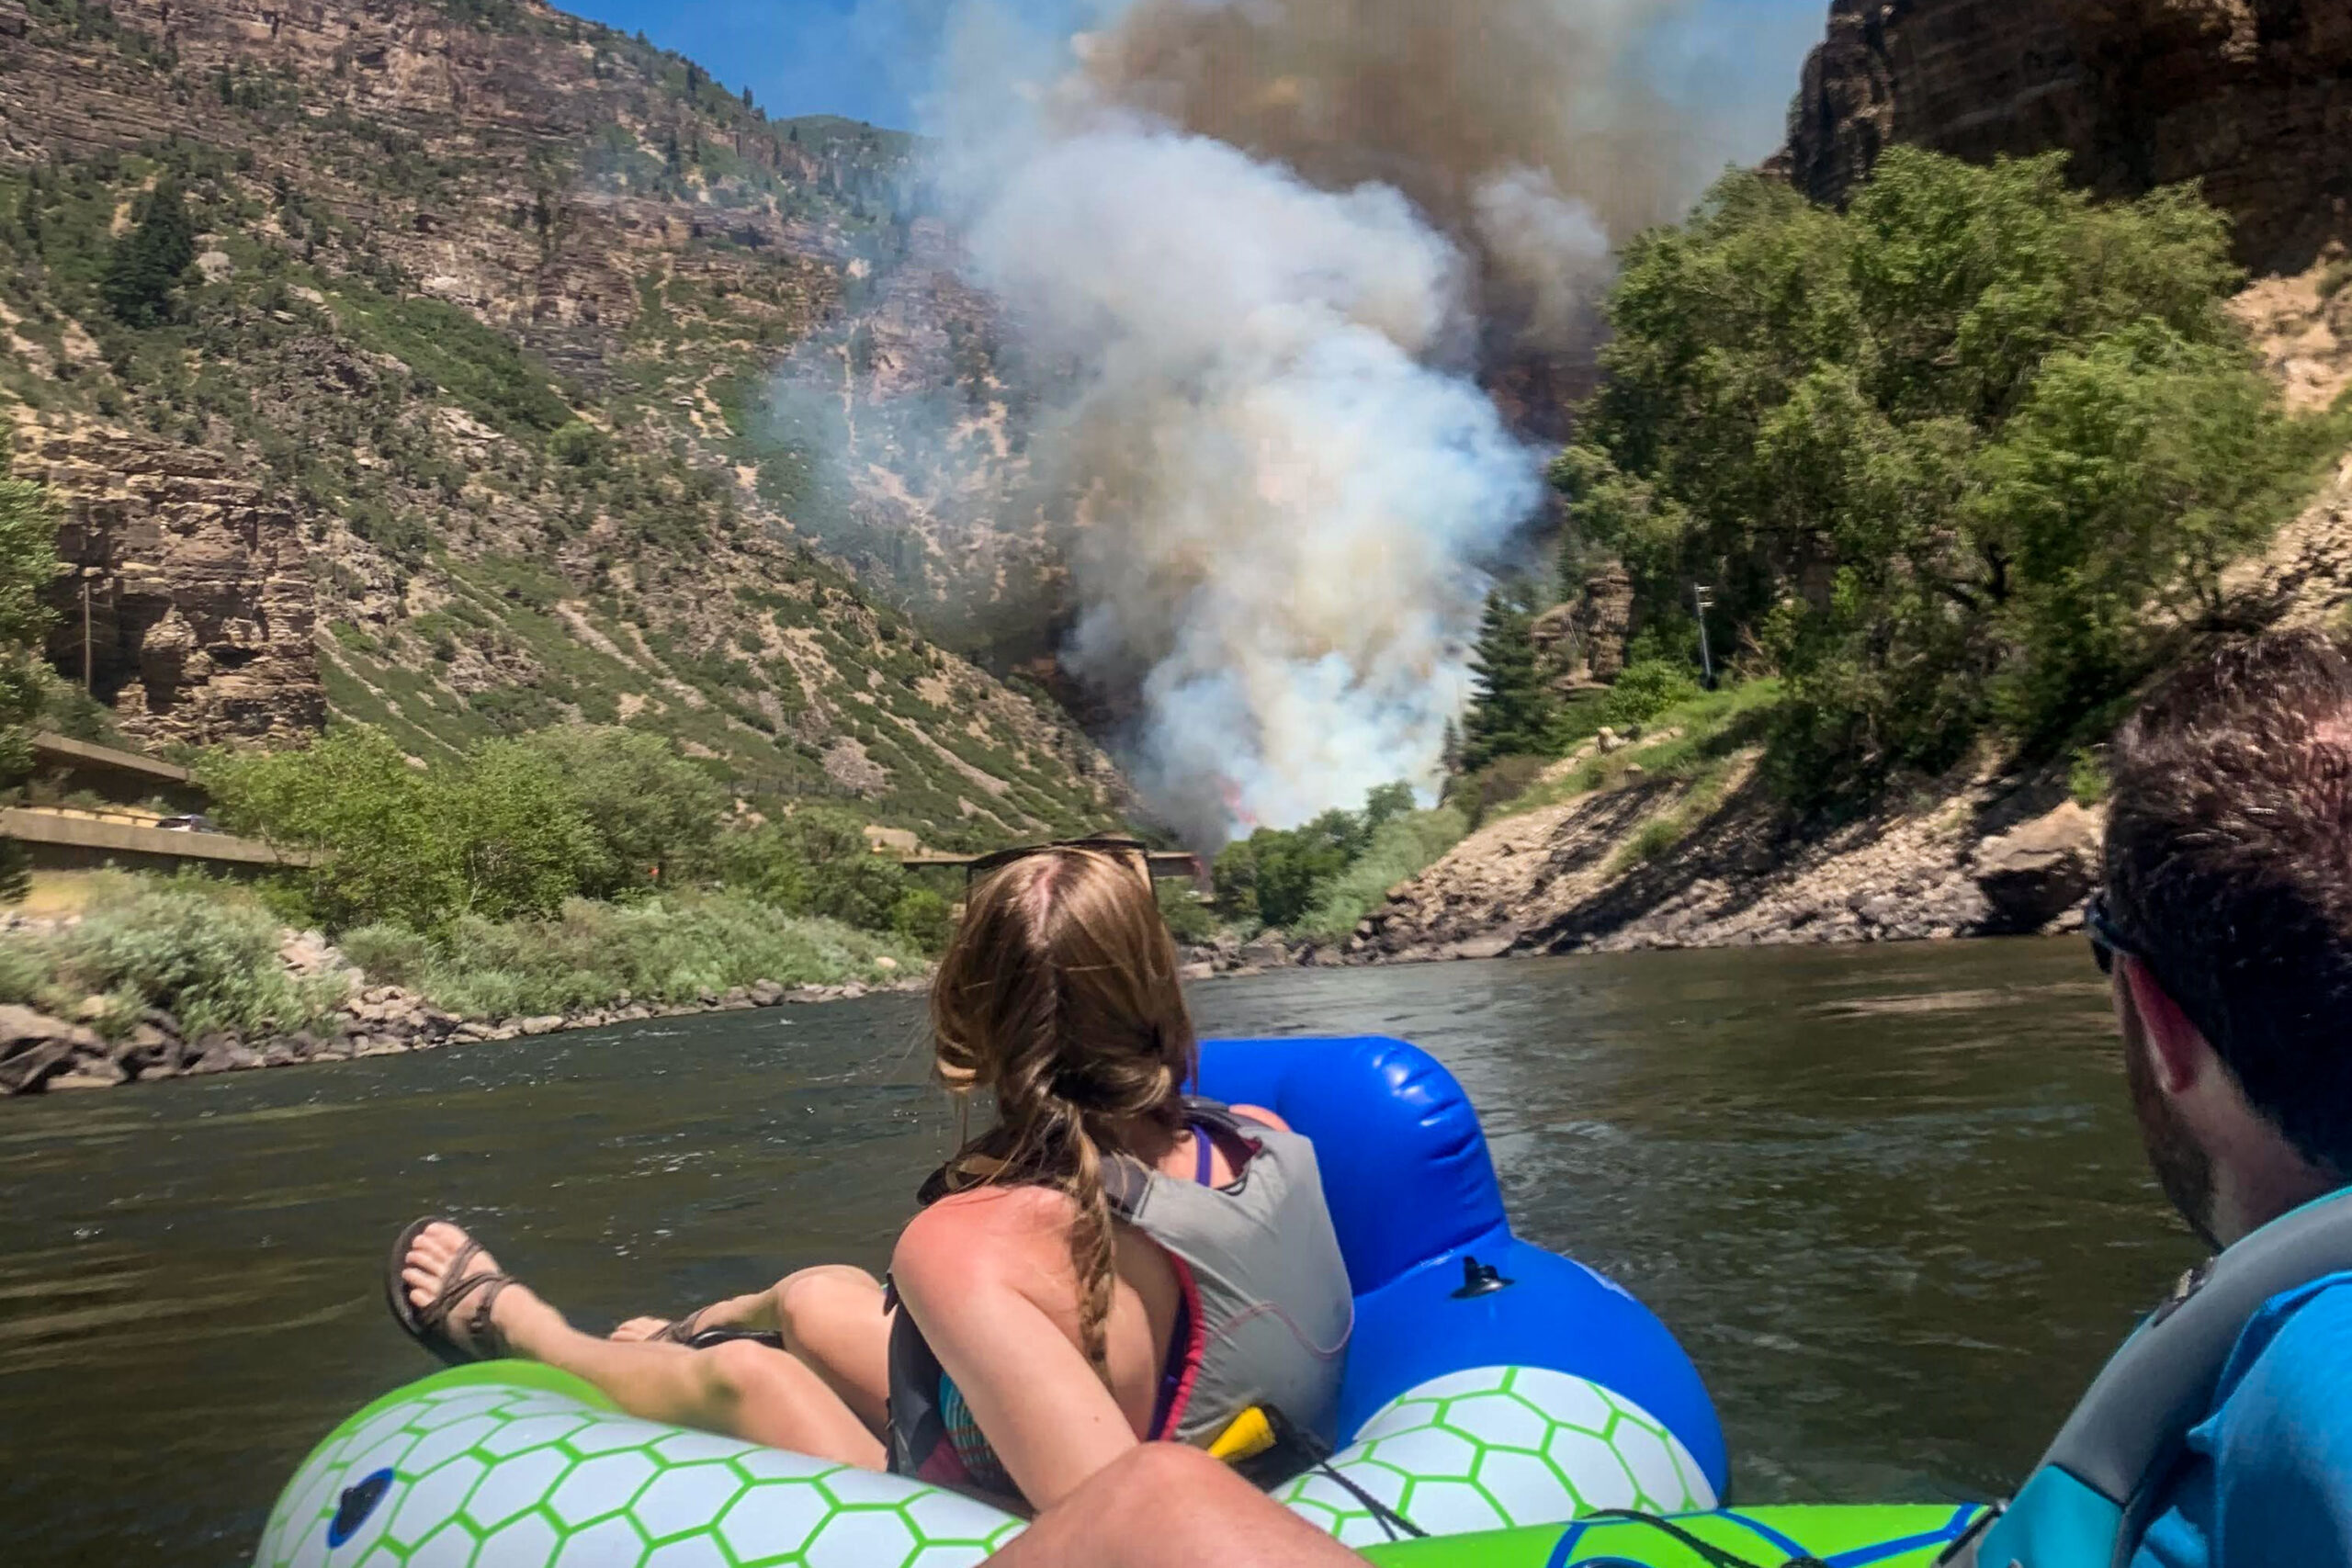 Lindsay Bobyak and Kyle Jones look on as smoke billows from fire along Interstate 70 in the Glenwood Canyon, Aug. 10, 2020.